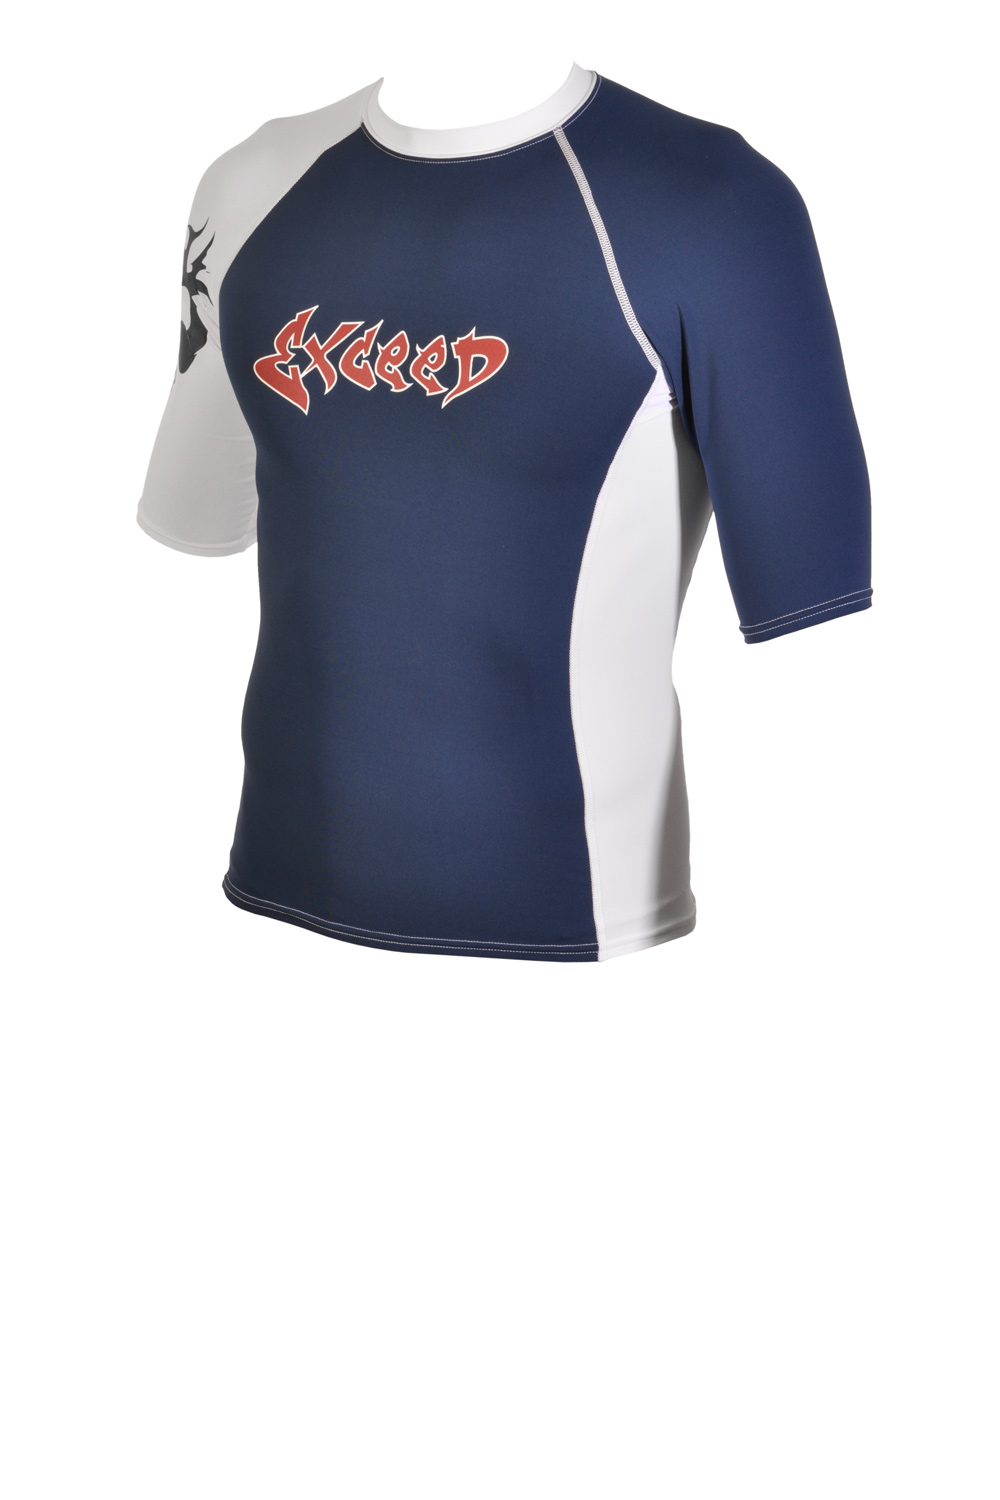 Exceed Edge Mens Short Sleeve Rash Guard